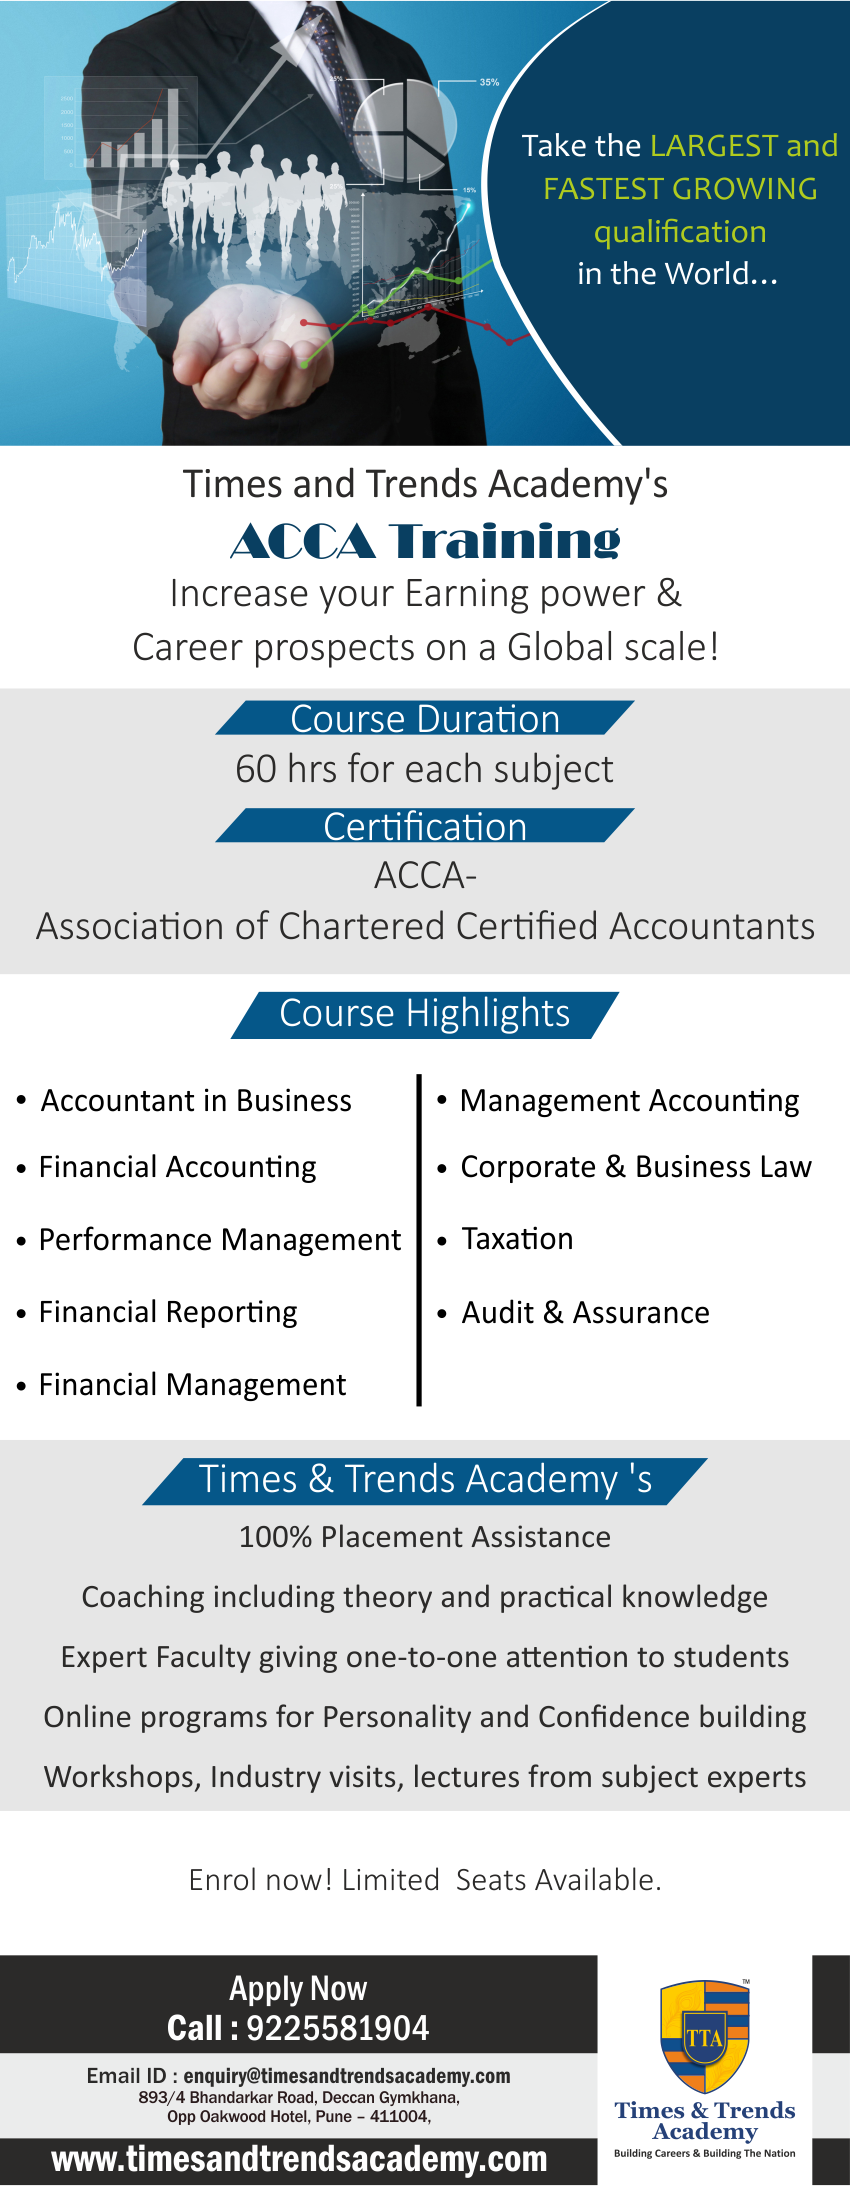 ACCA Training course landing page - Deccan - Times and Trends